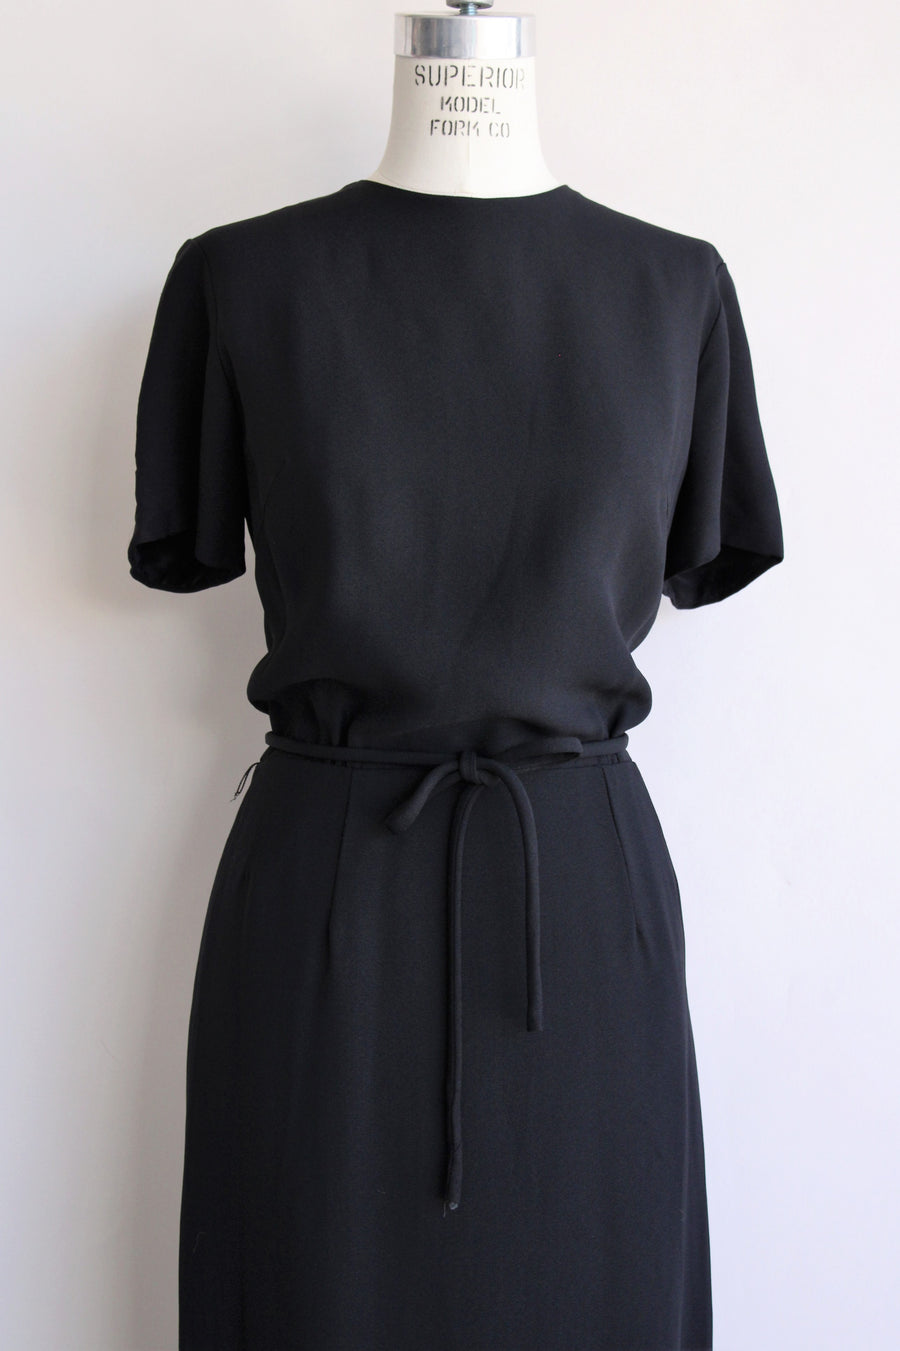 Vintage 1960s Black Dress by Georgee Originals